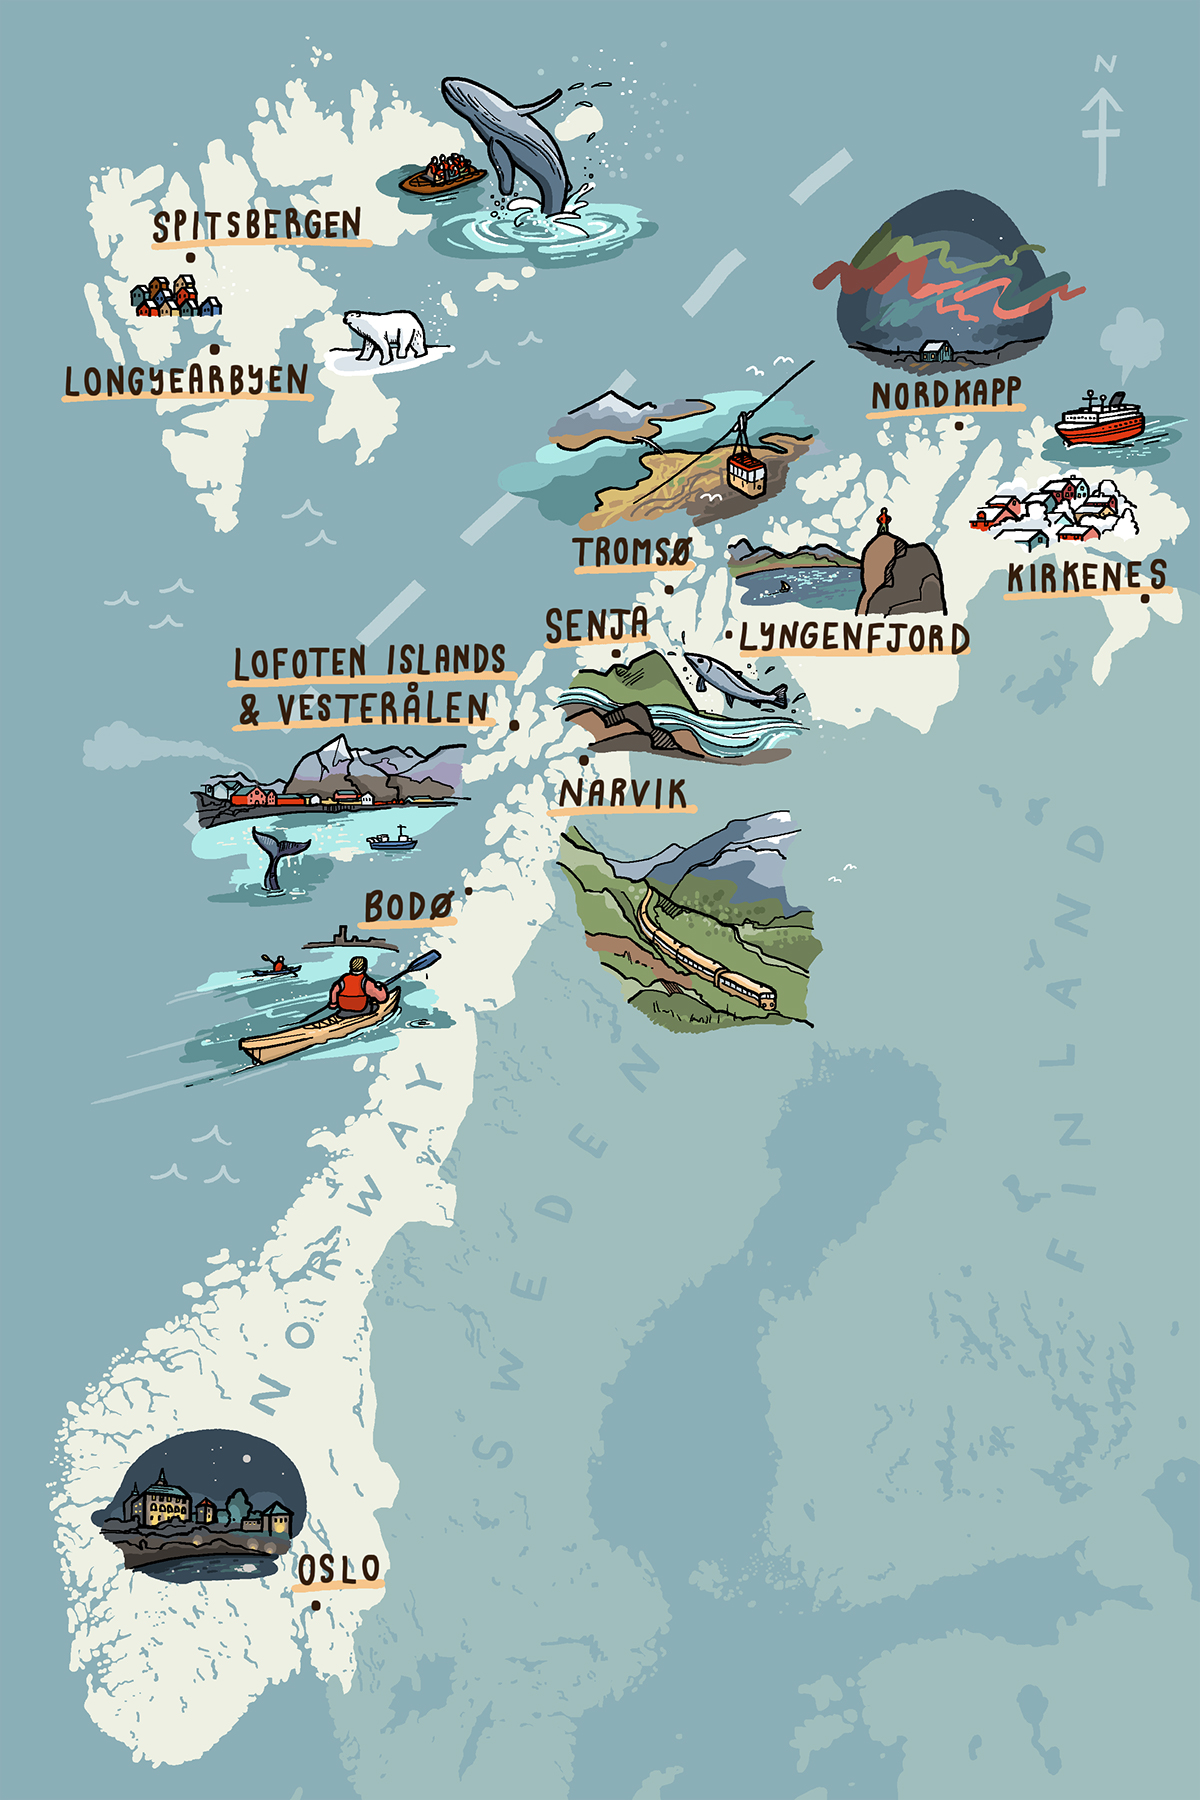 The Independent Northern Norway Map on Behance